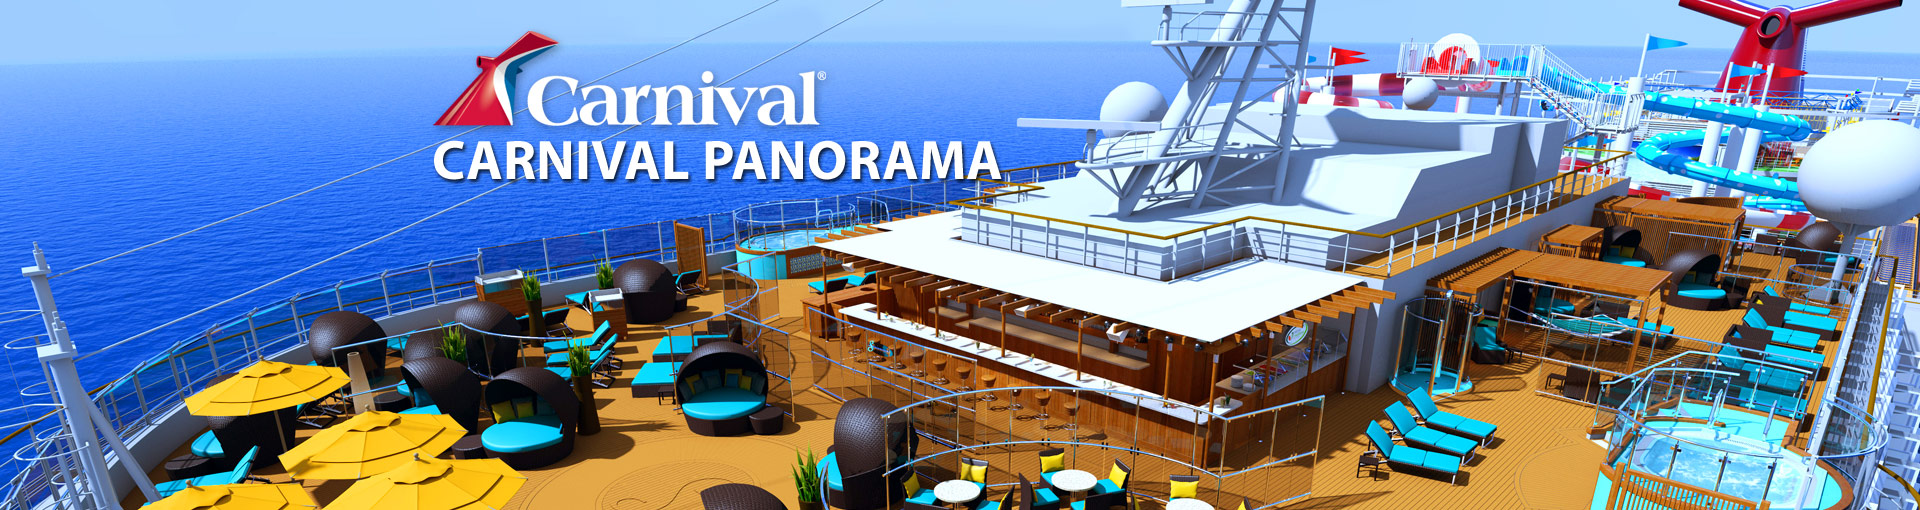 Carnival Panorama Cruise Ship 2019 And 2020 Carnival